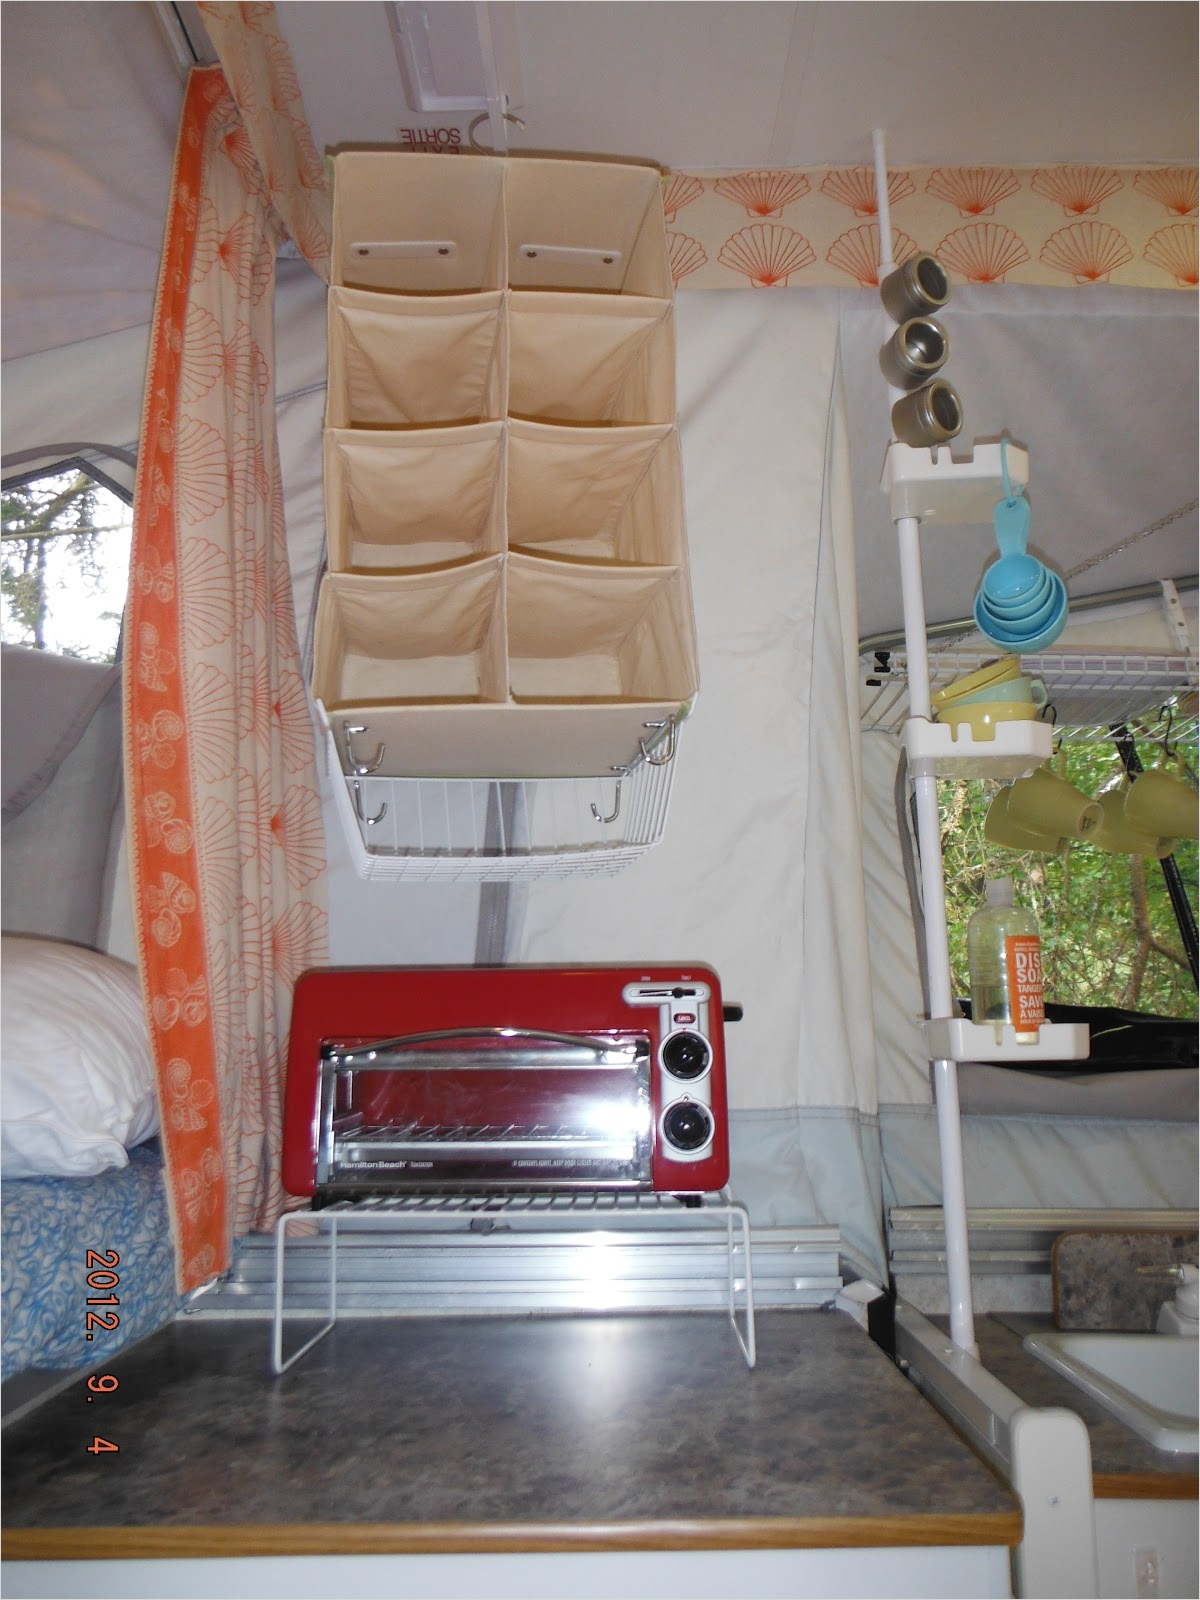 40 Diy Rv Camper Storage Ideas 88 This House We Call Home Our New to Us Camper 7